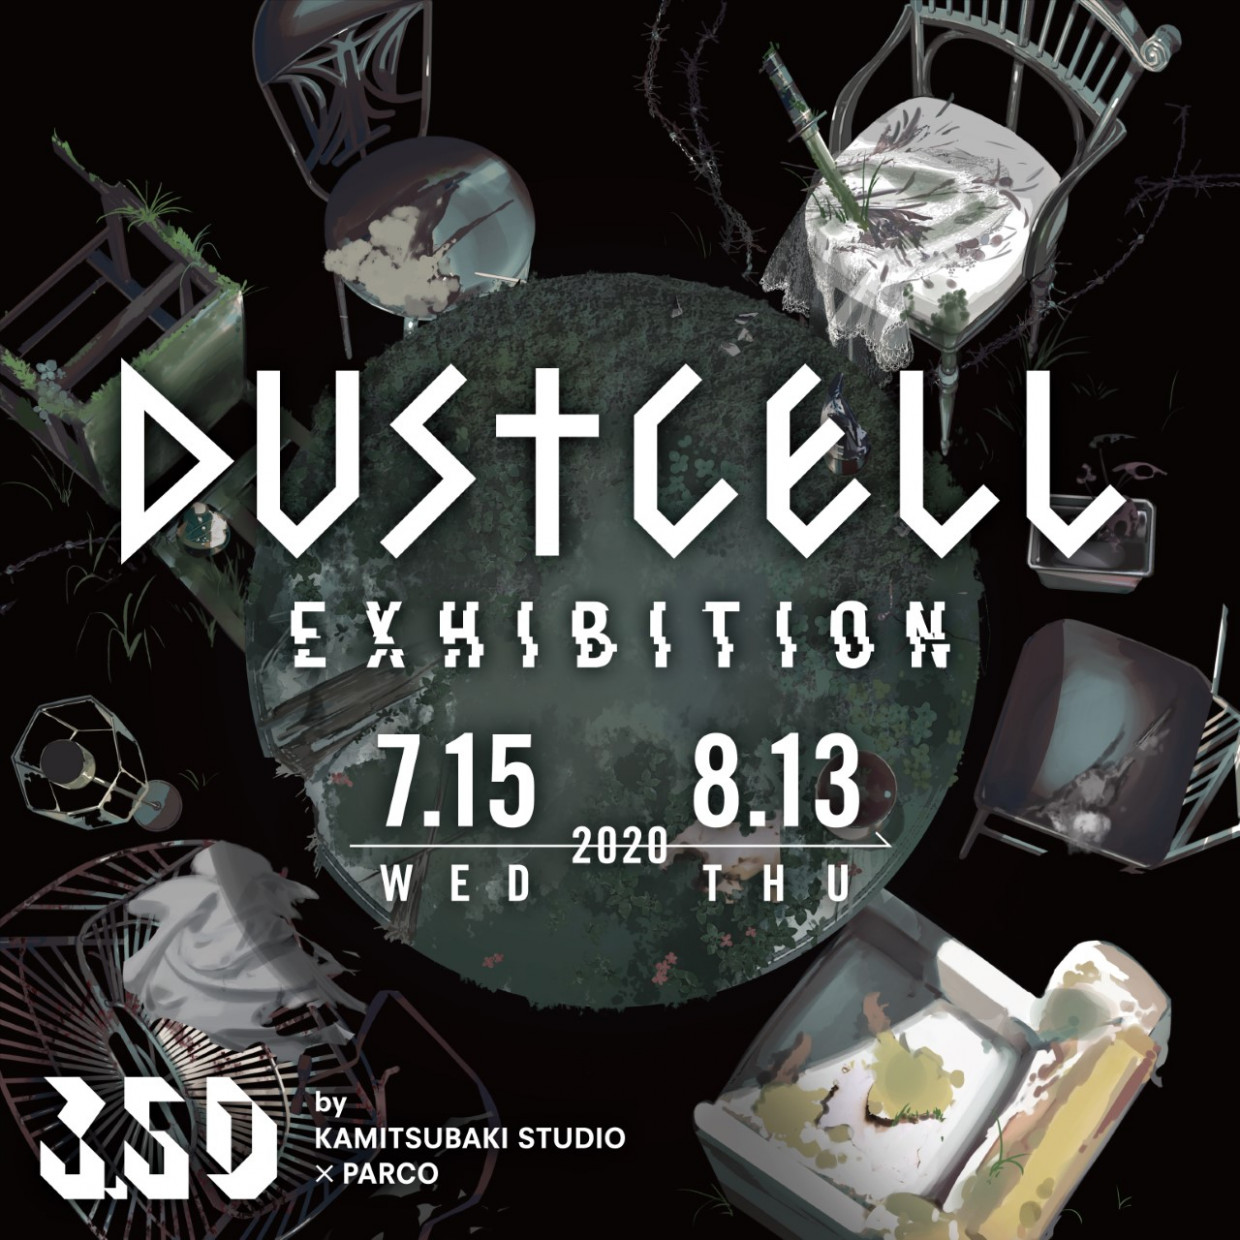 DUSTCELL 1st ALBUM「SUMMIT」発売記念「DUSTCELL展」開催決定!!